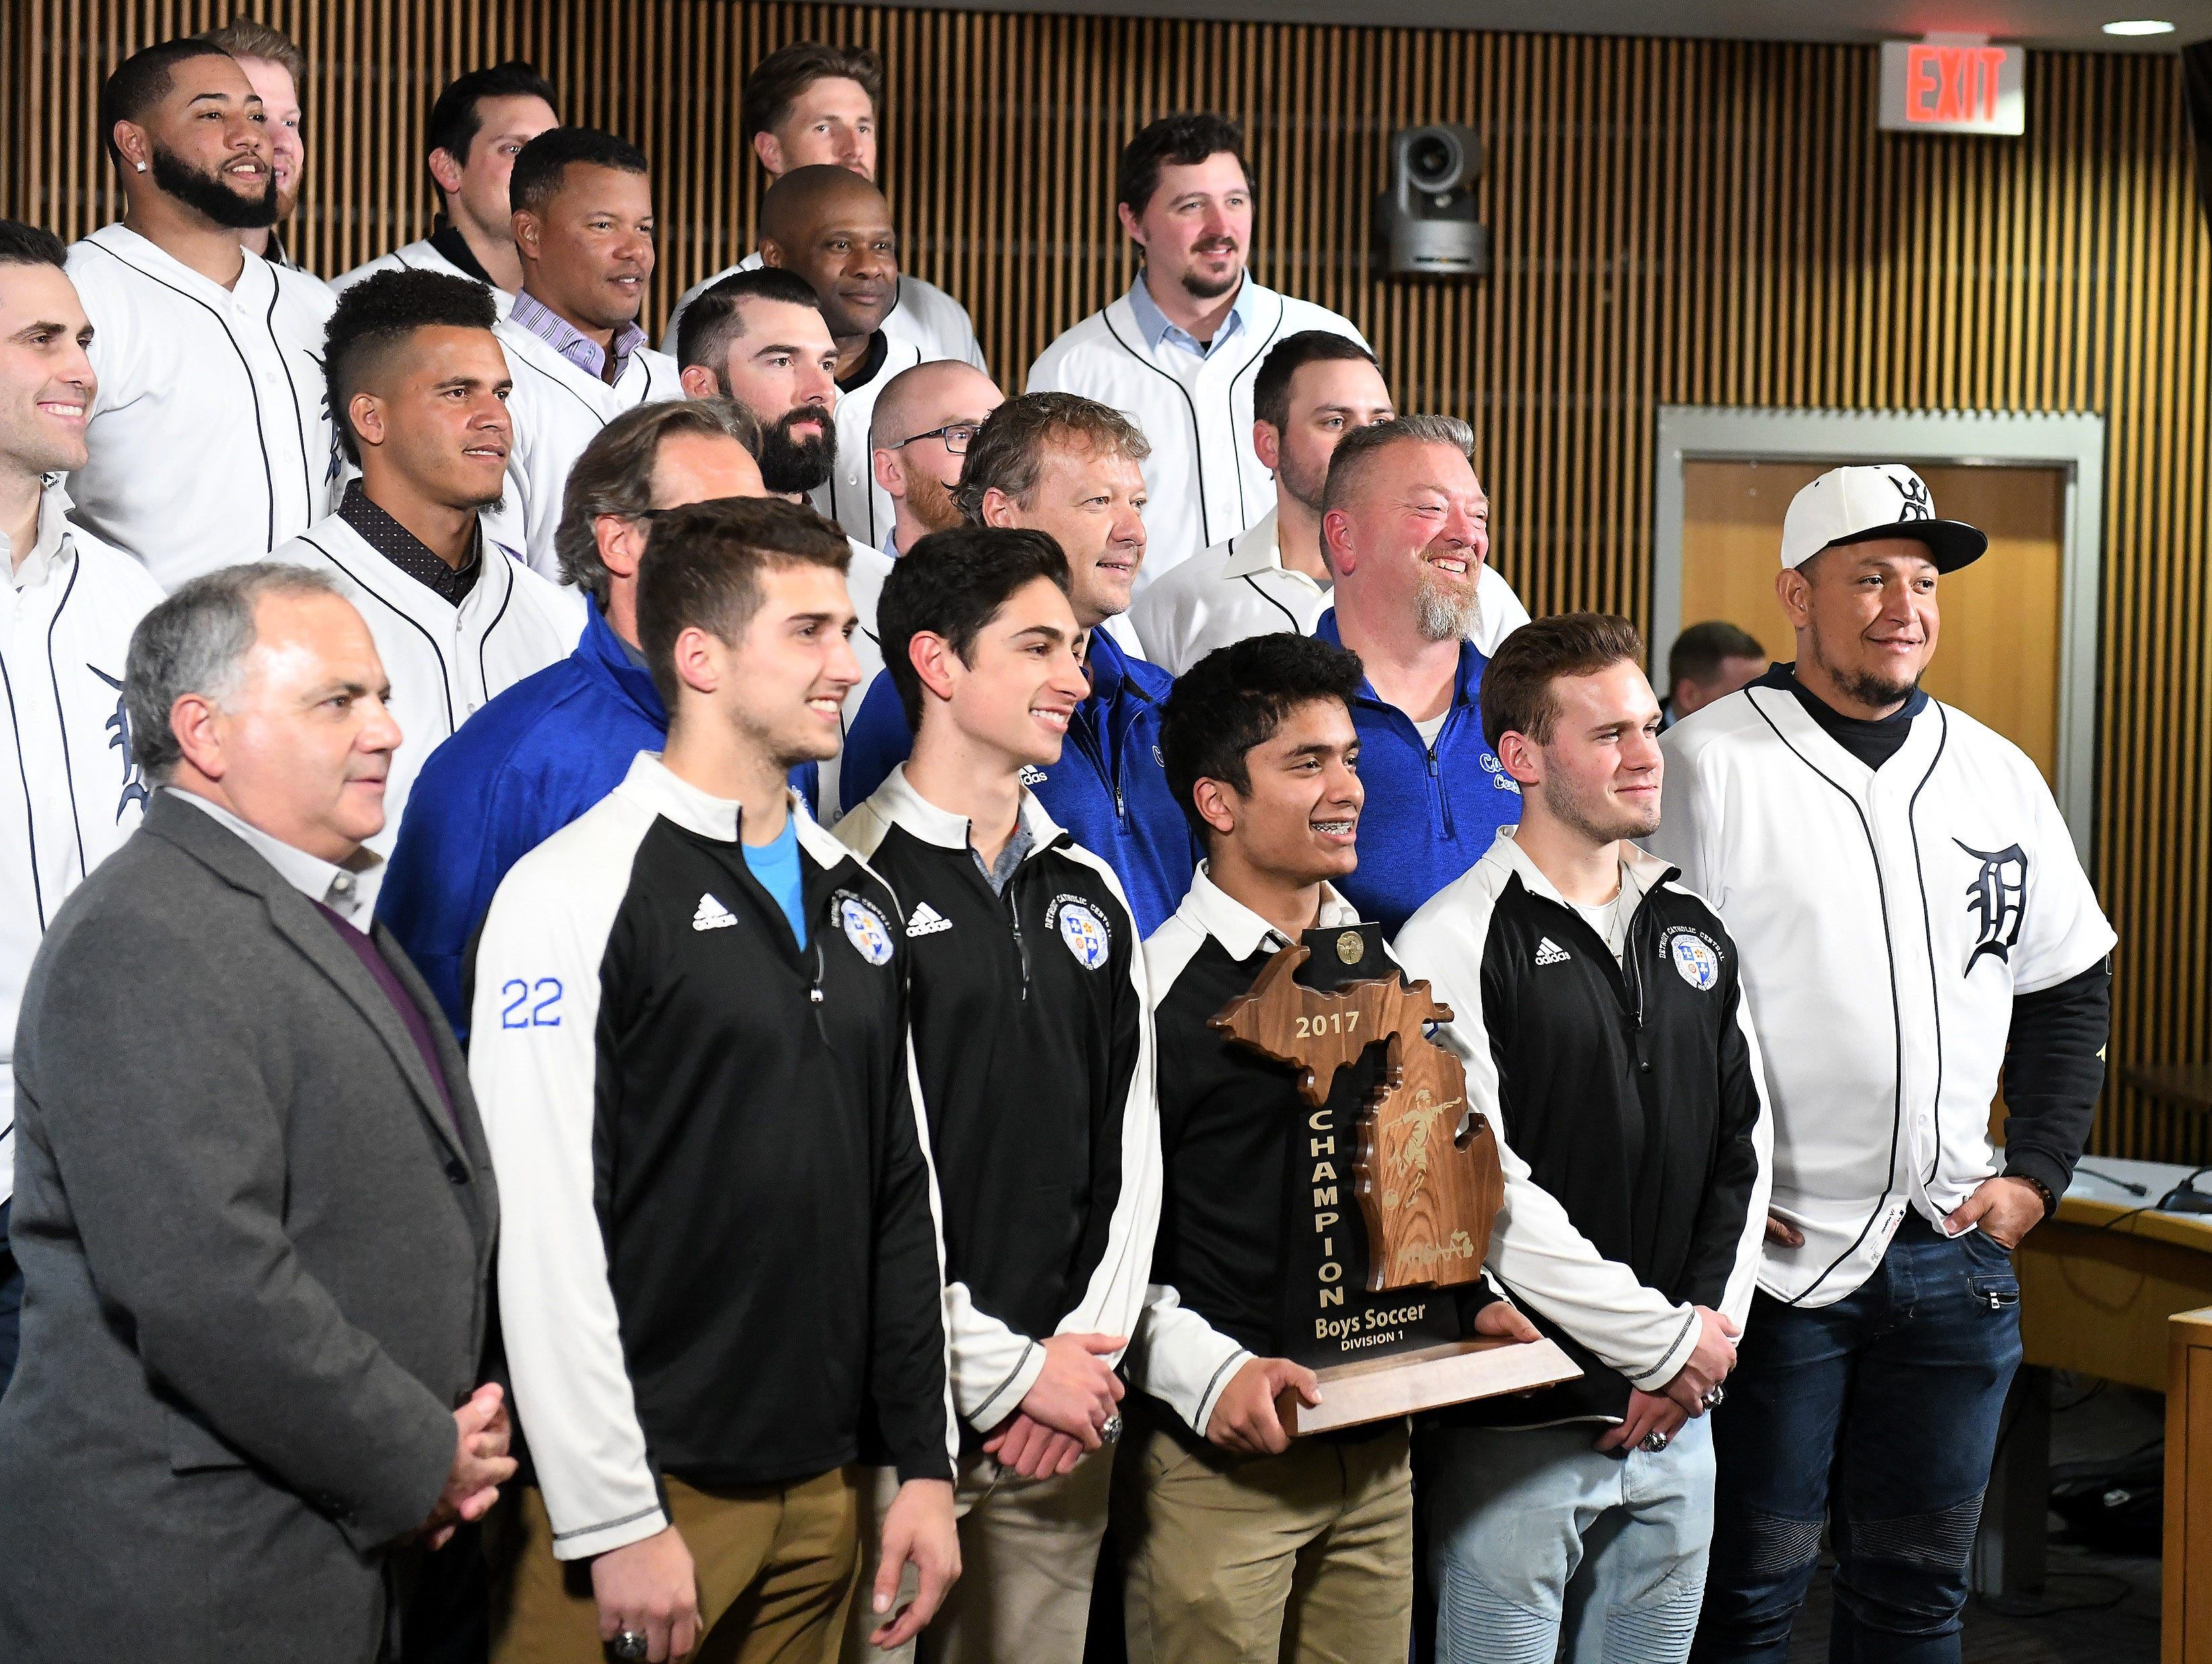 Tigers' Miguel Cabrera, right, and members of the Detroit Tigers take a group photos with some of the Div. 1 champion Novi soccer players during a stop on the 2019 Detroit Tigers Winter Caravan at the Novi Civic Center in Novi, Mich. on Jan. 24, 2019.